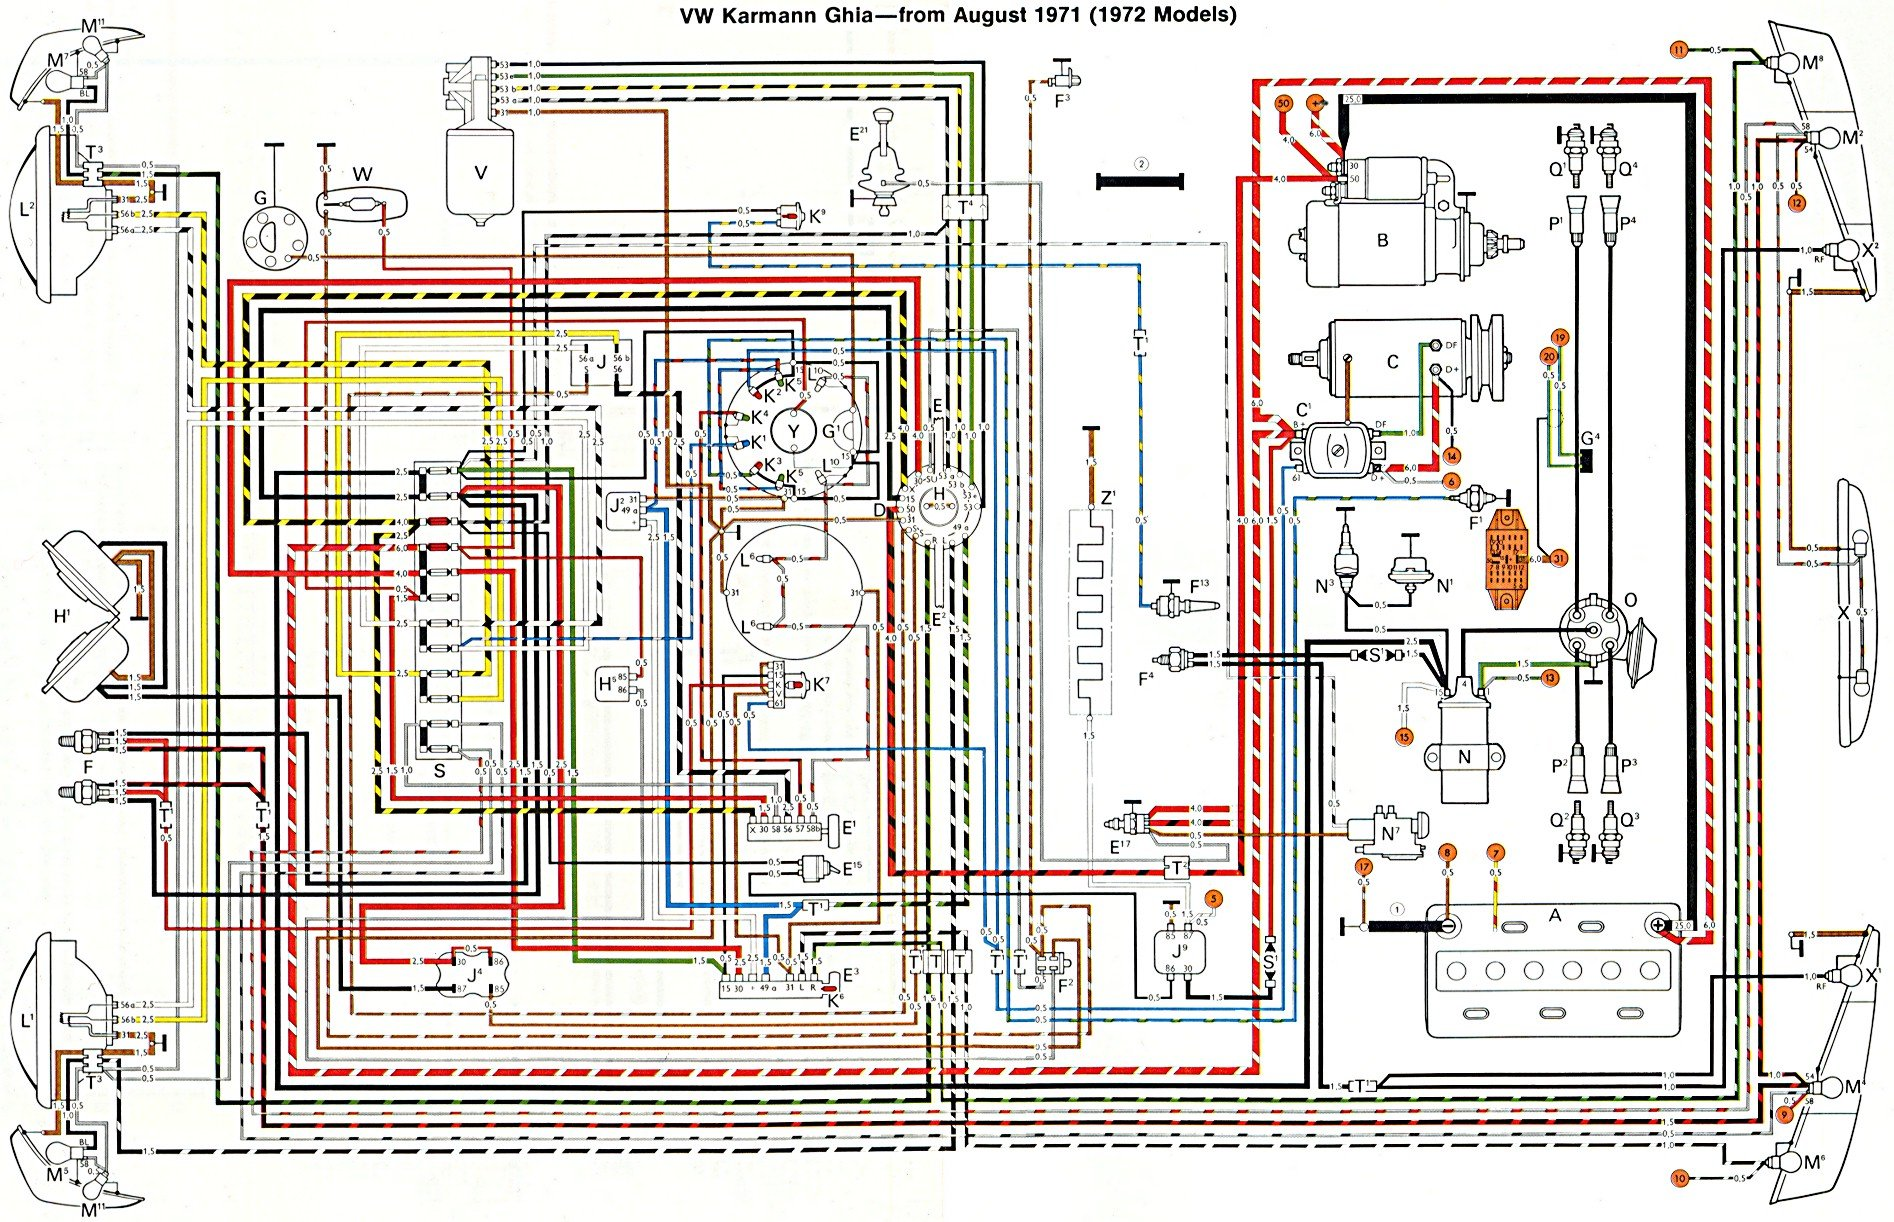 72ghia thesamba com karmann ghia wiring diagrams 914 wiring diagram at creativeand.co